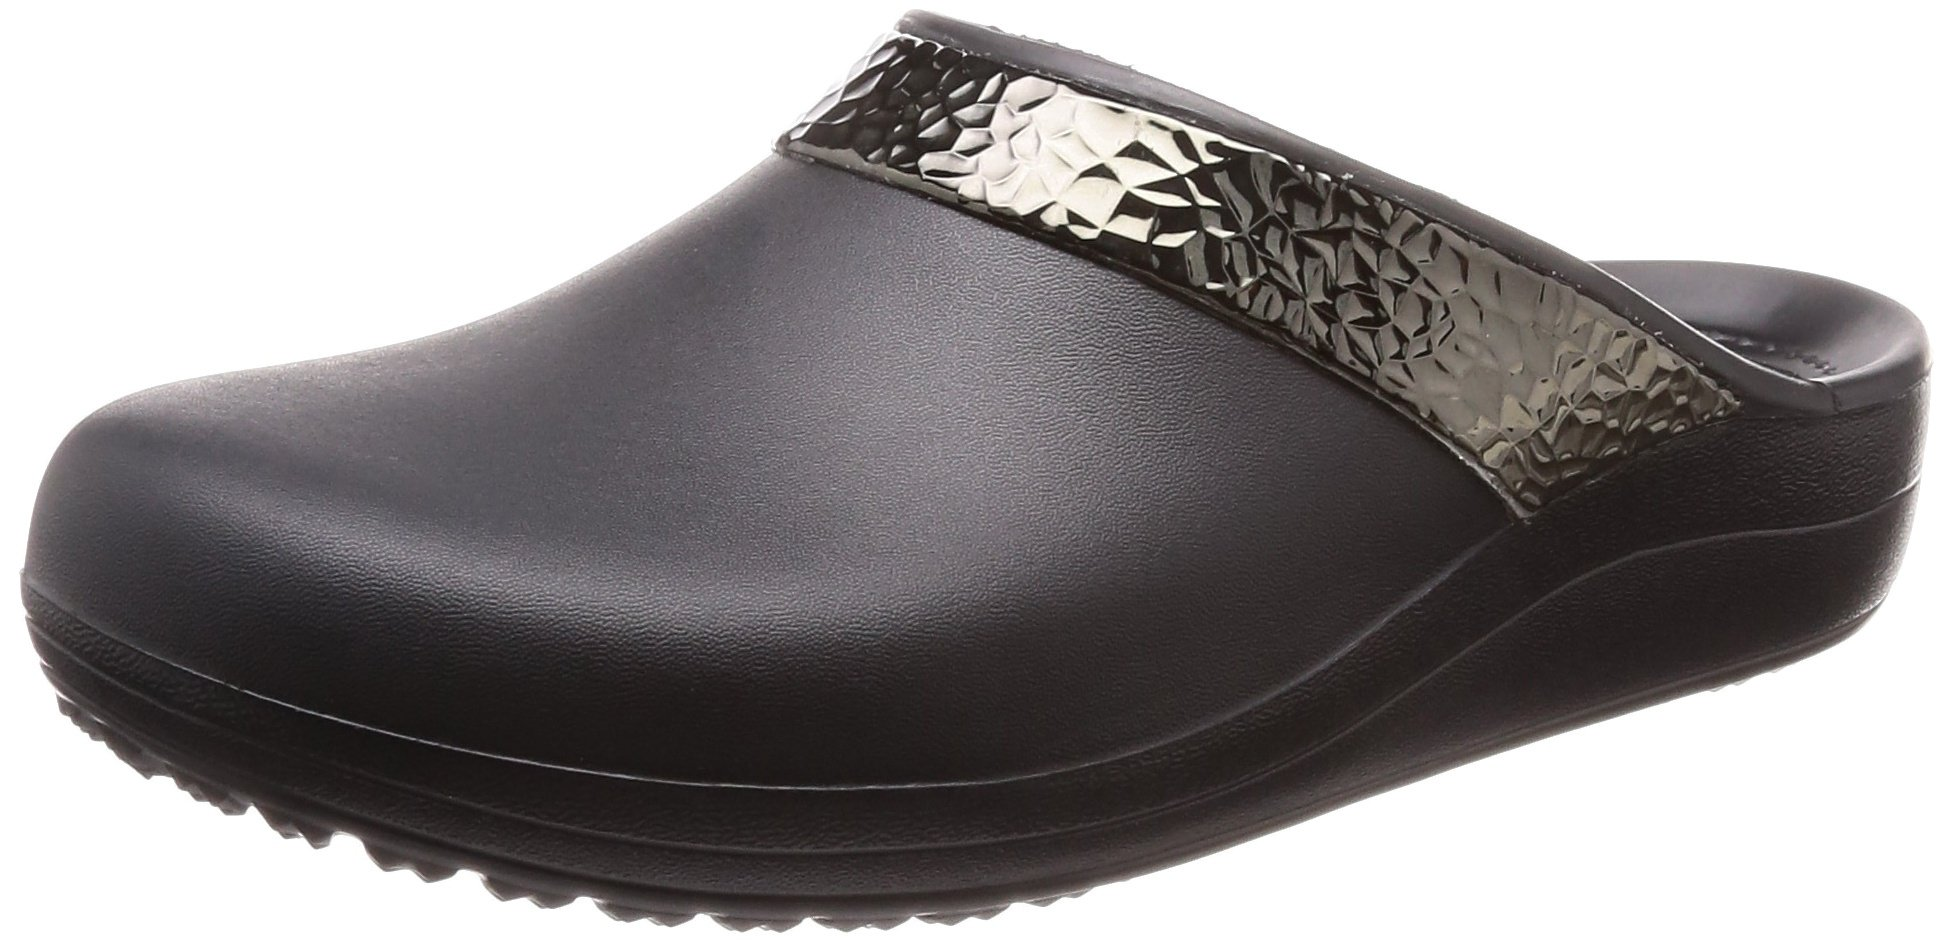 Crocs Women's Sloane Hammered Metallic Clog, Black/Black, 8 M US